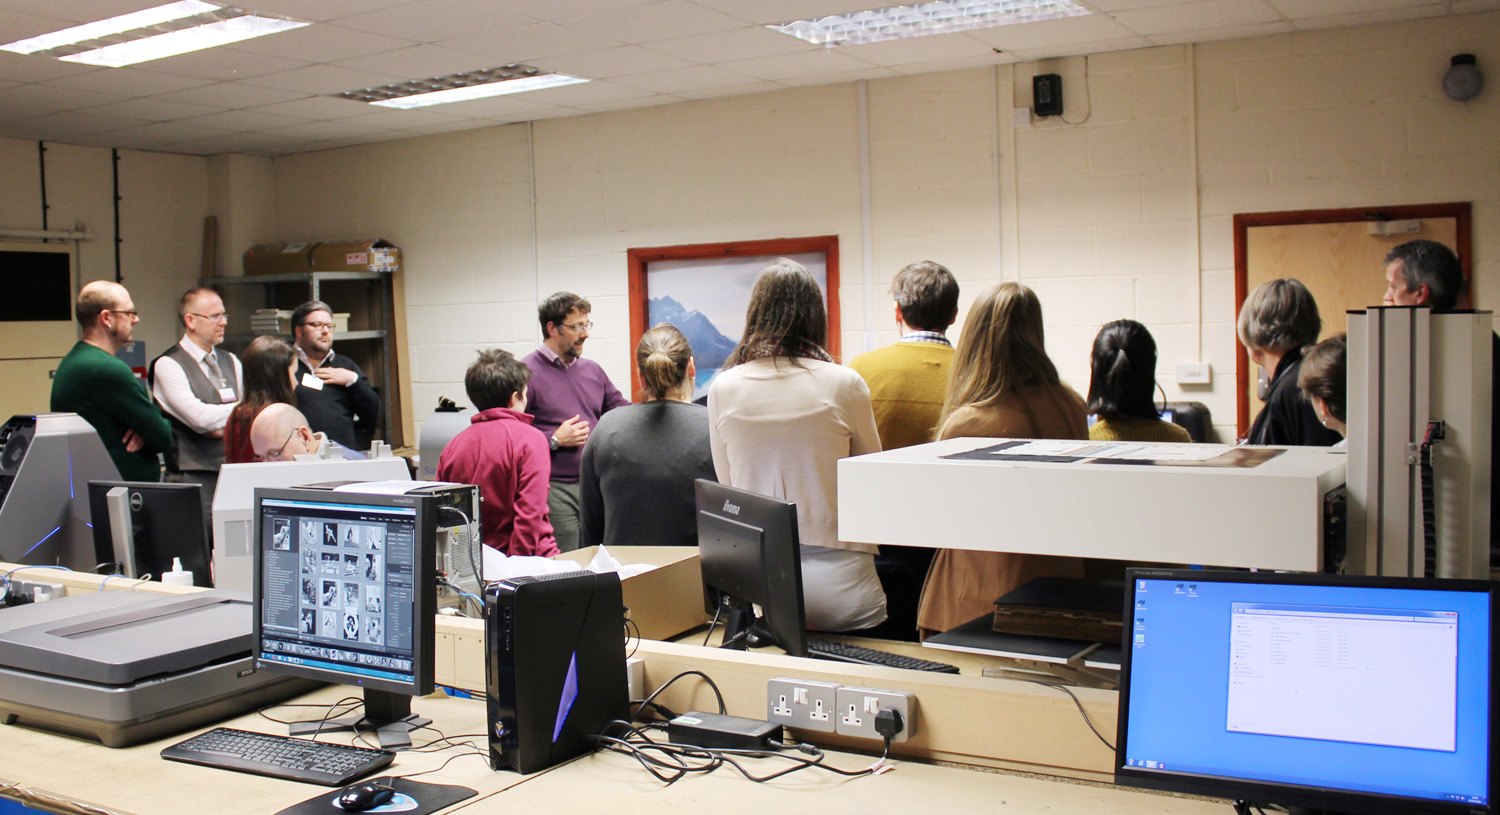 The Digitisation Workshop Tour